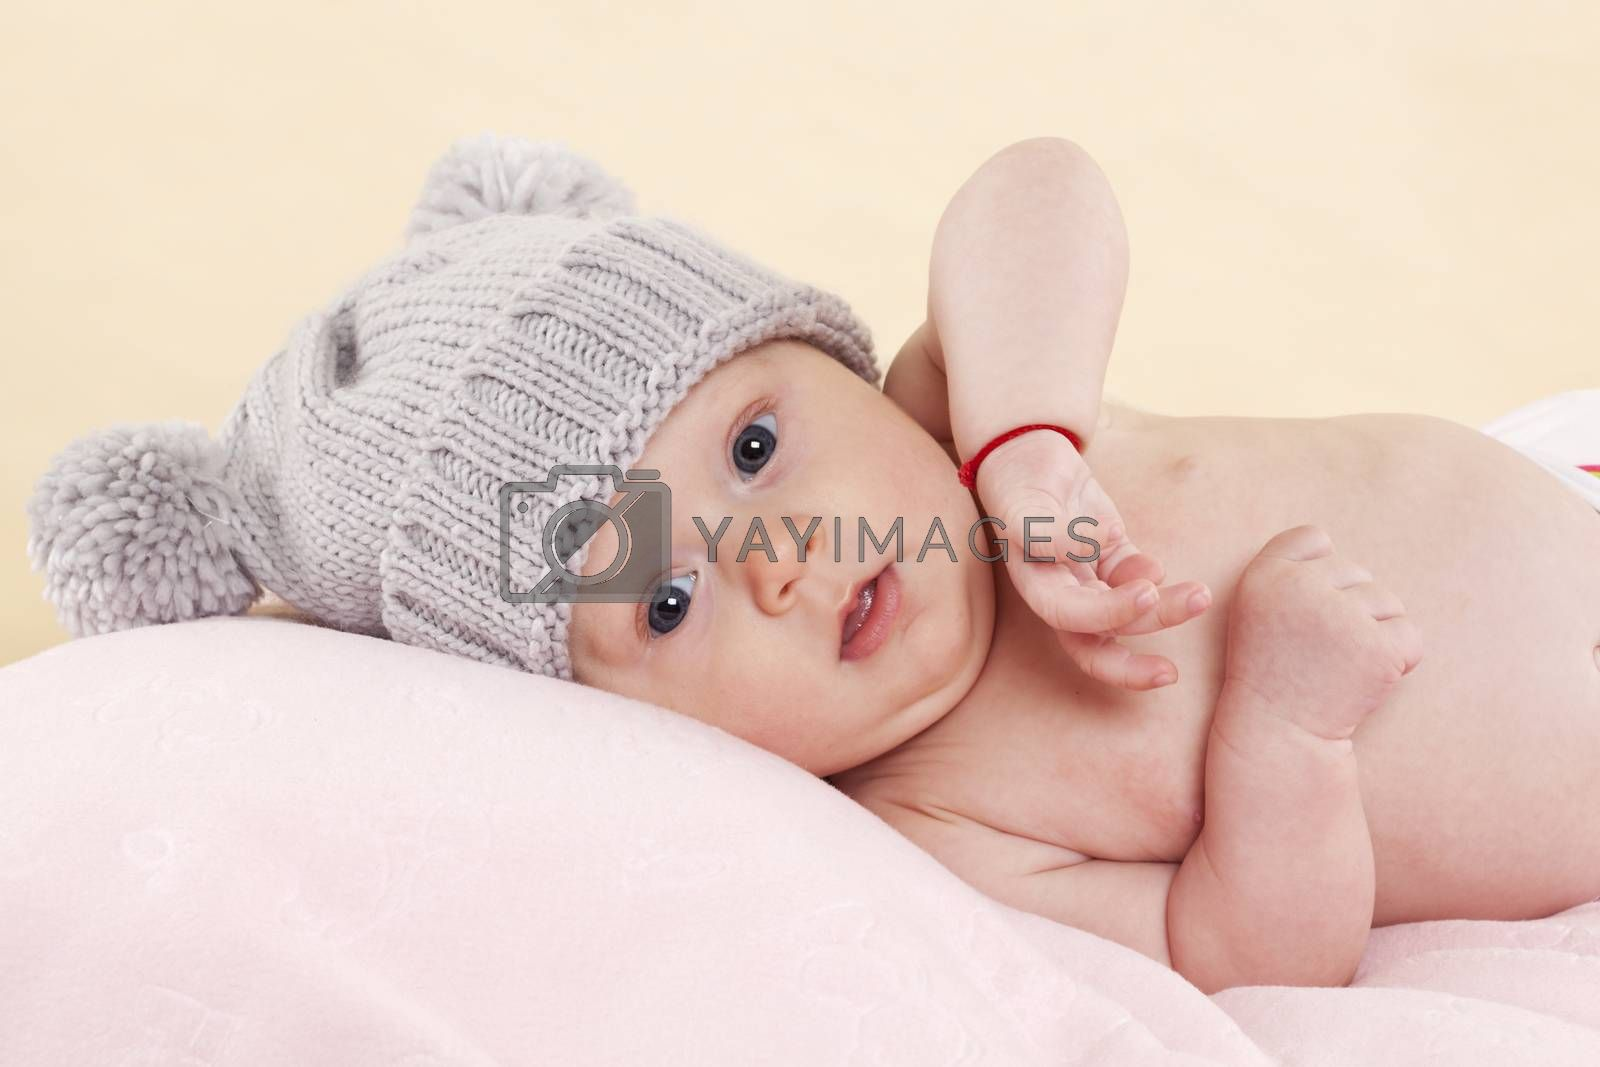 Cute naked baby girl with grey hat lying on a blanket and looking into the camera. Beautiful newborn concept.